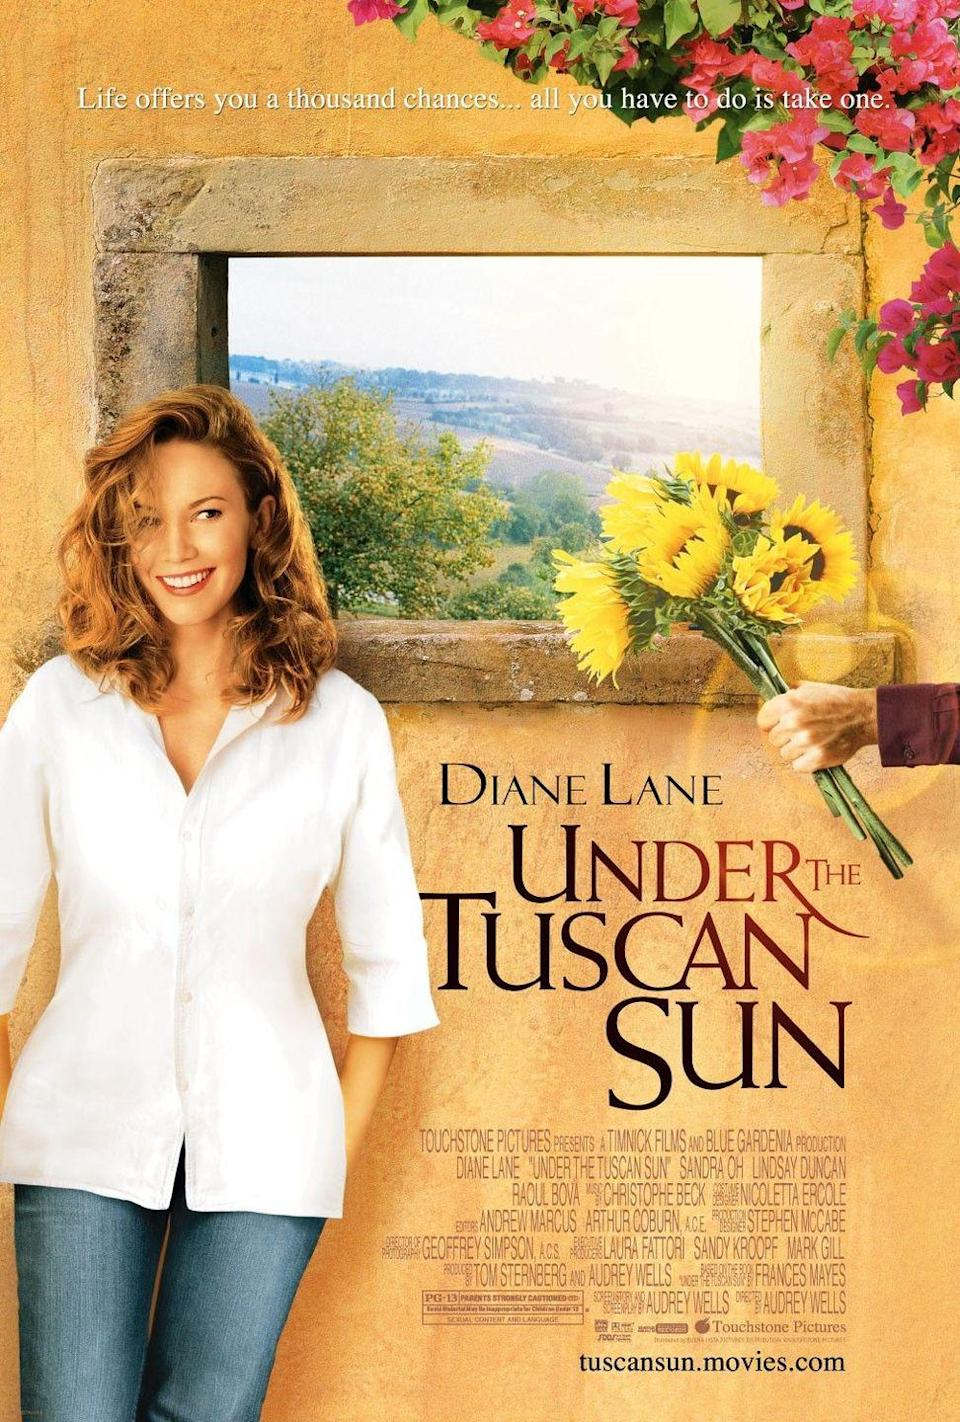 """<p><a class=""""link rapid-noclick-resp"""" href=""""https://www.amazon.com/Under-Tuscan-Sun-Diane-Lane/dp/B00HMDRK56/ref=sr_1_1?tag=syn-yahoo-20&ascsubtag=%5Bartid%7C10050.g.25810122%5Bsrc%7Cyahoo-us"""" rel=""""nofollow noopener"""" target=""""_blank"""" data-ylk=""""slk:STREAM NOW"""">STREAM NOW</a></p><p>Diane Lane jets off on an Italian vacation, and ends up making herself at home in a gorgeous villa. </p>"""